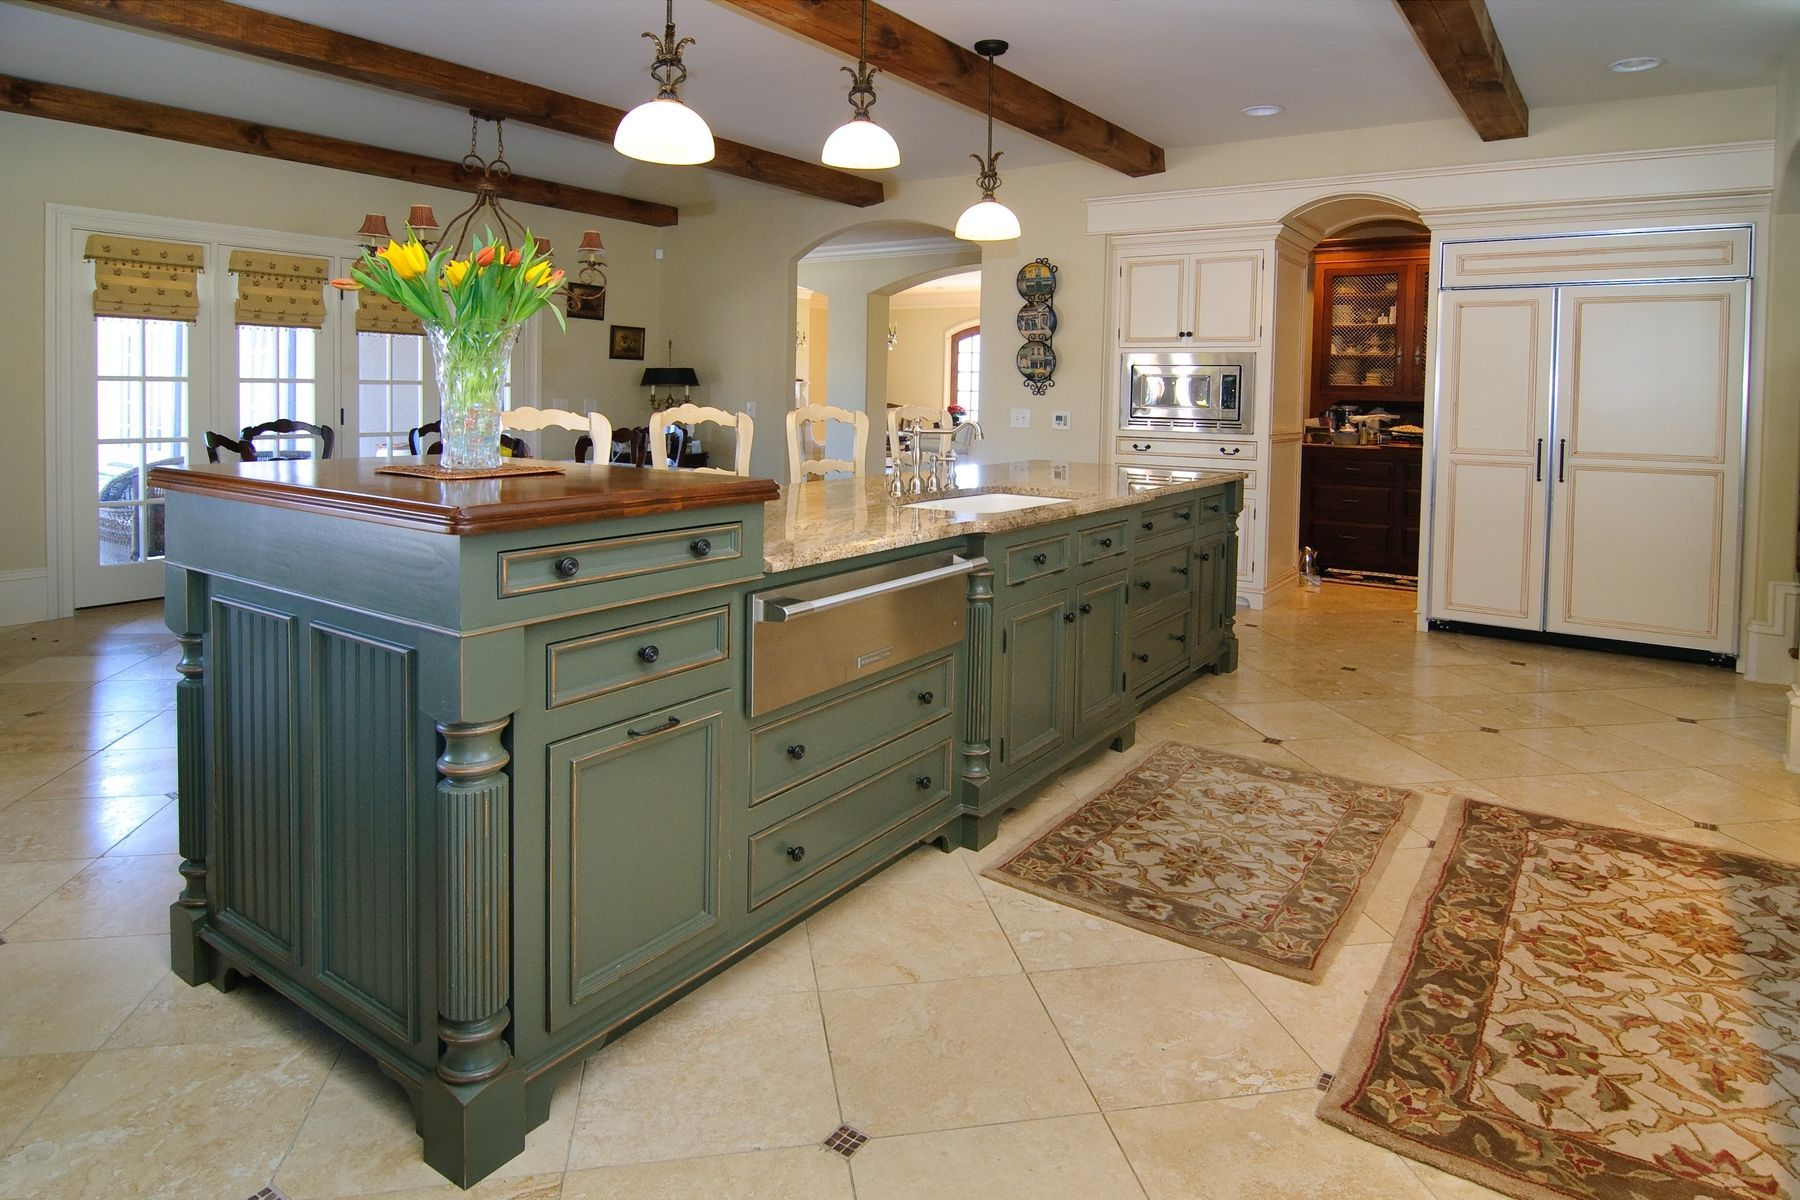 Kitchen Island Cabinet In Custom Design For Sale Can Be Purchased Online To Make Custom Kitchen Remodel Kitchen Island With Sink Green Kitchen Island